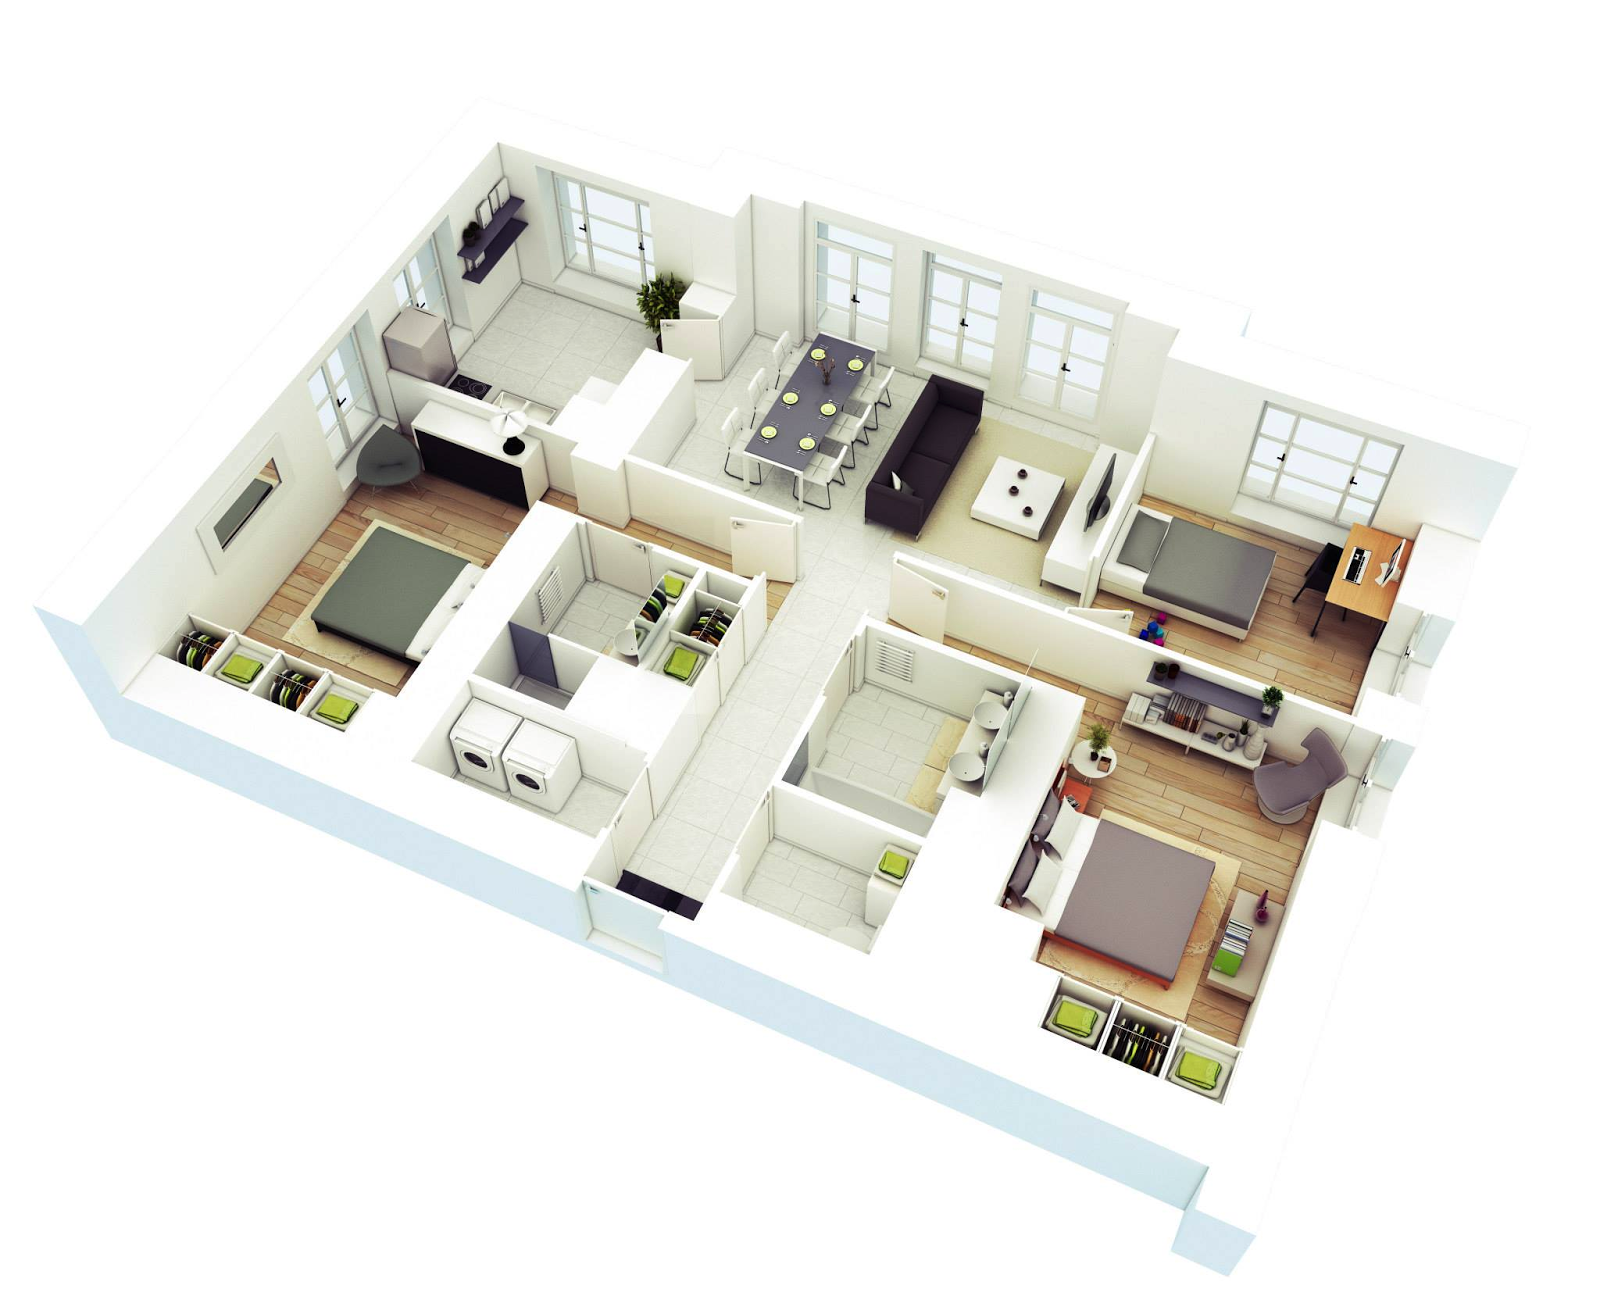 3 Bedroom Modern House Design Gorgeous Ideas 10 3D House Plans In Zimbabwe 25 More 3 Bedroom